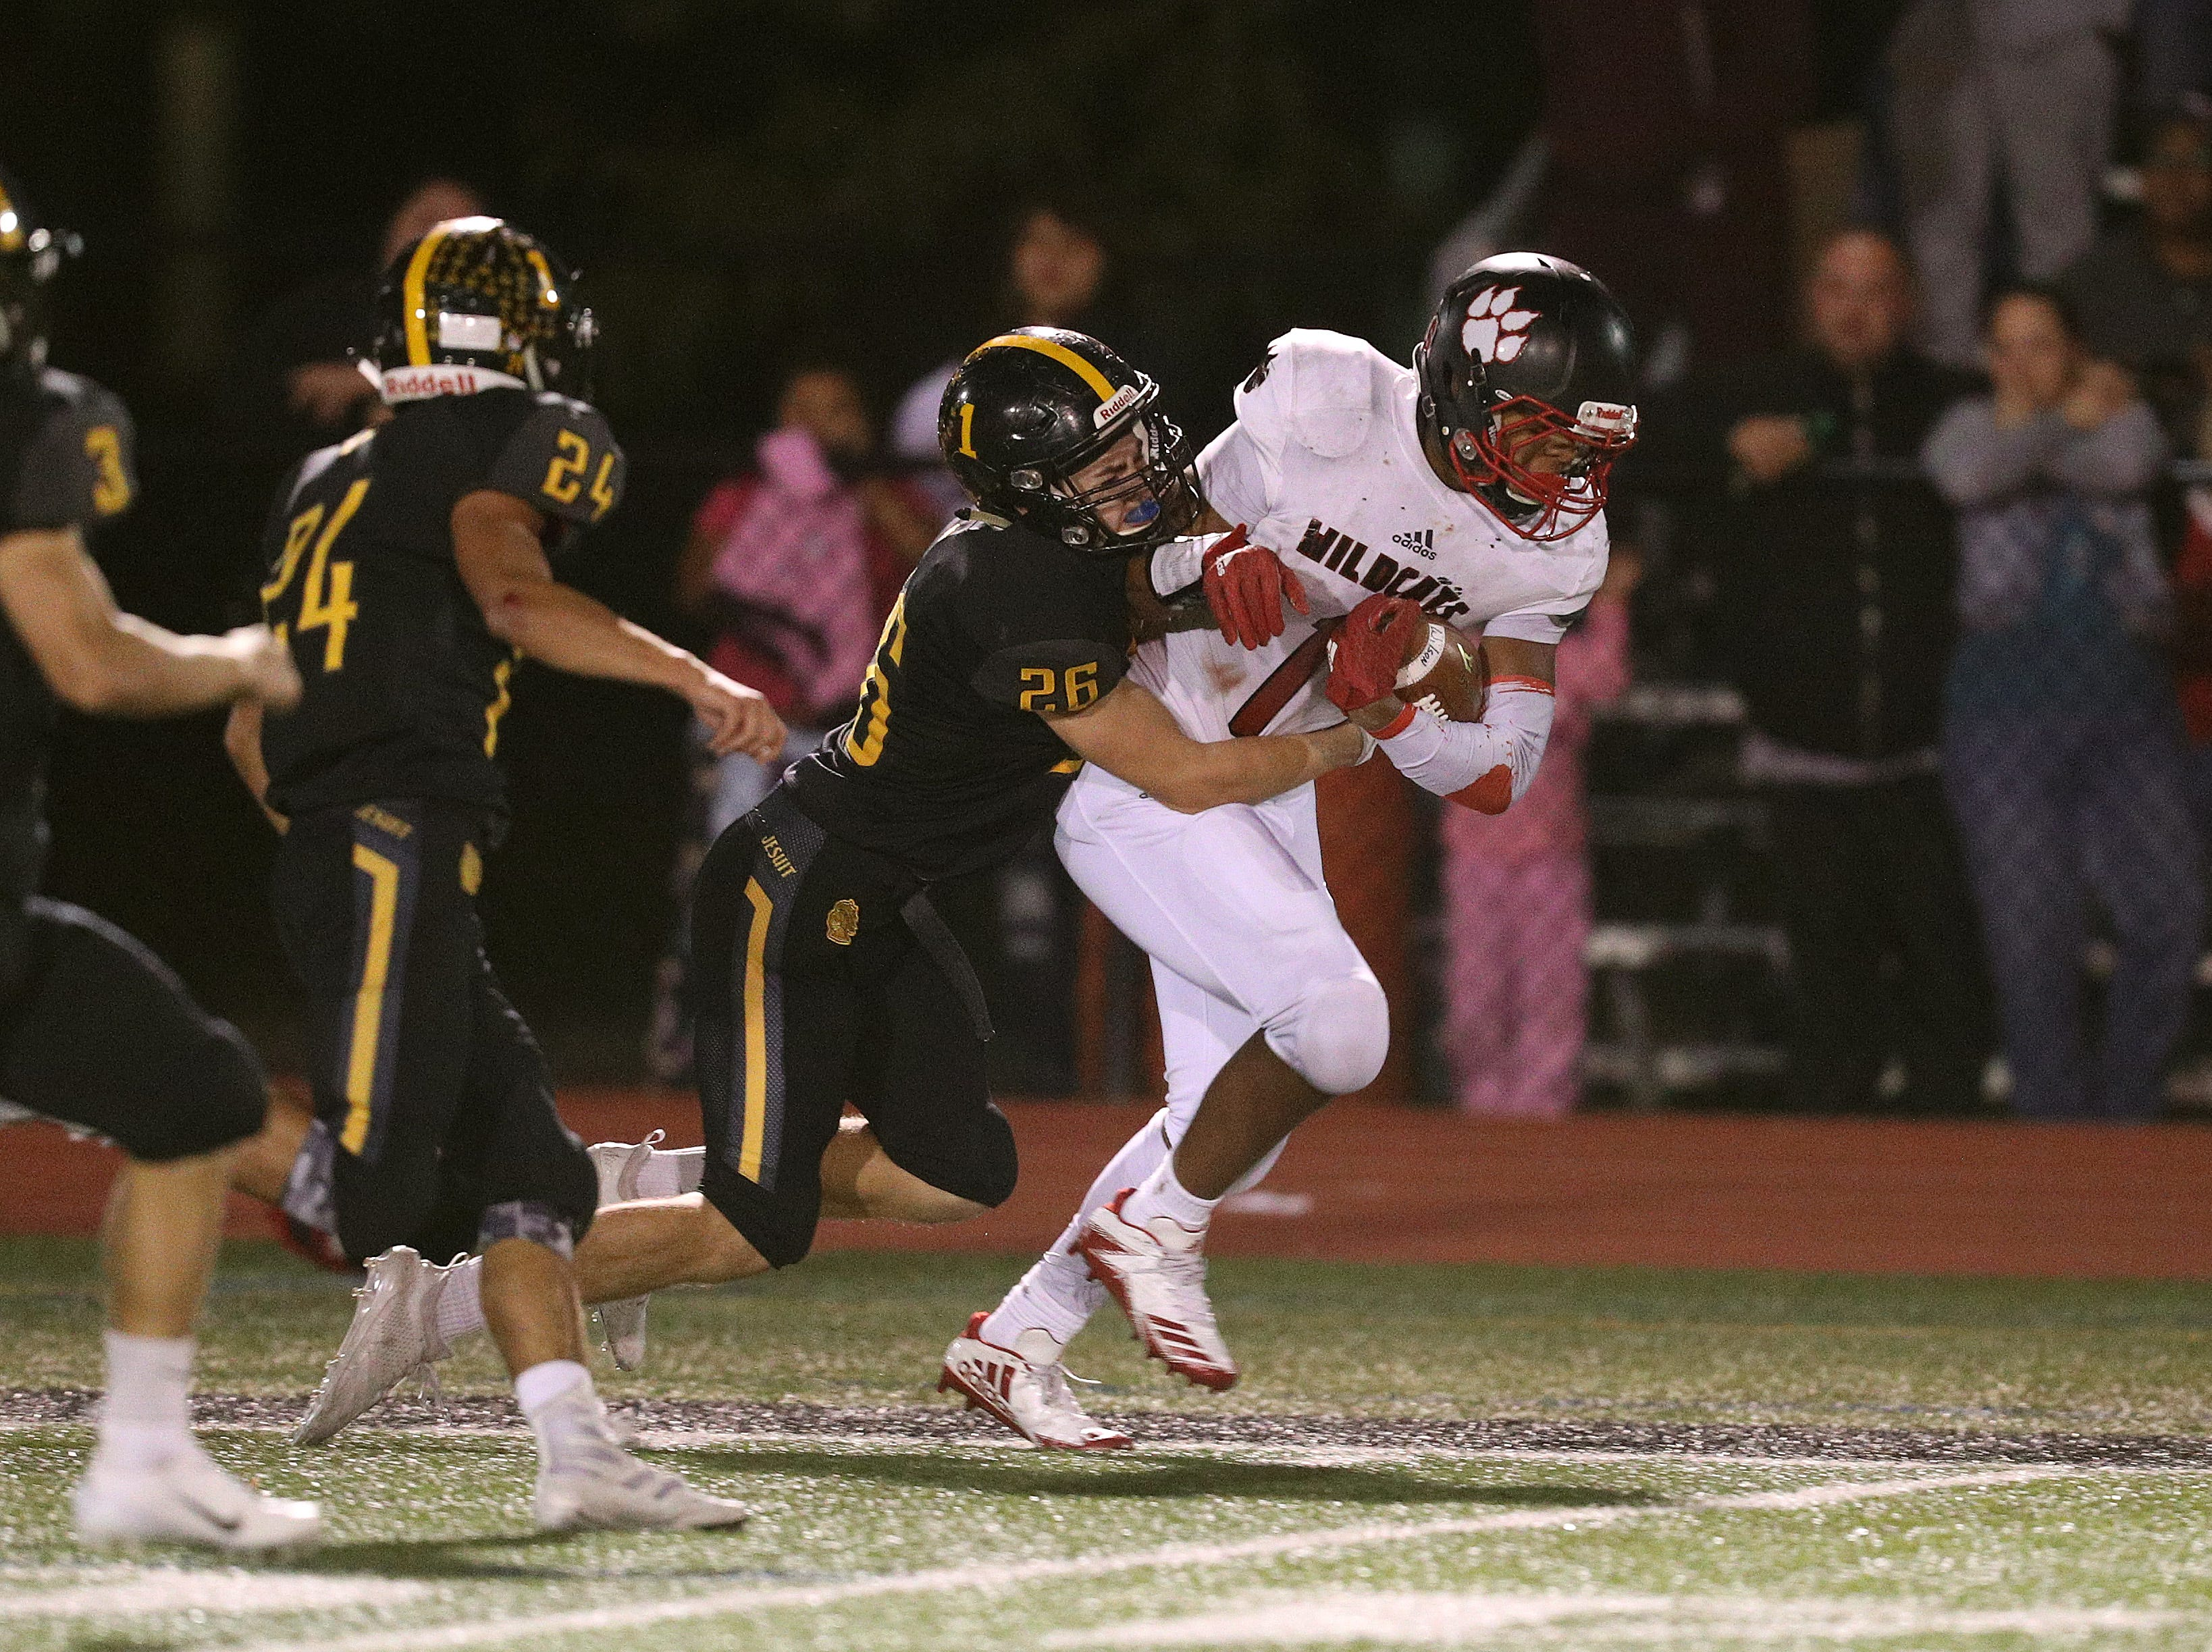 Wilson running back Desi Floyd Jr. fights through the tackle of McQuaid's Casey Howlett for extra yards.